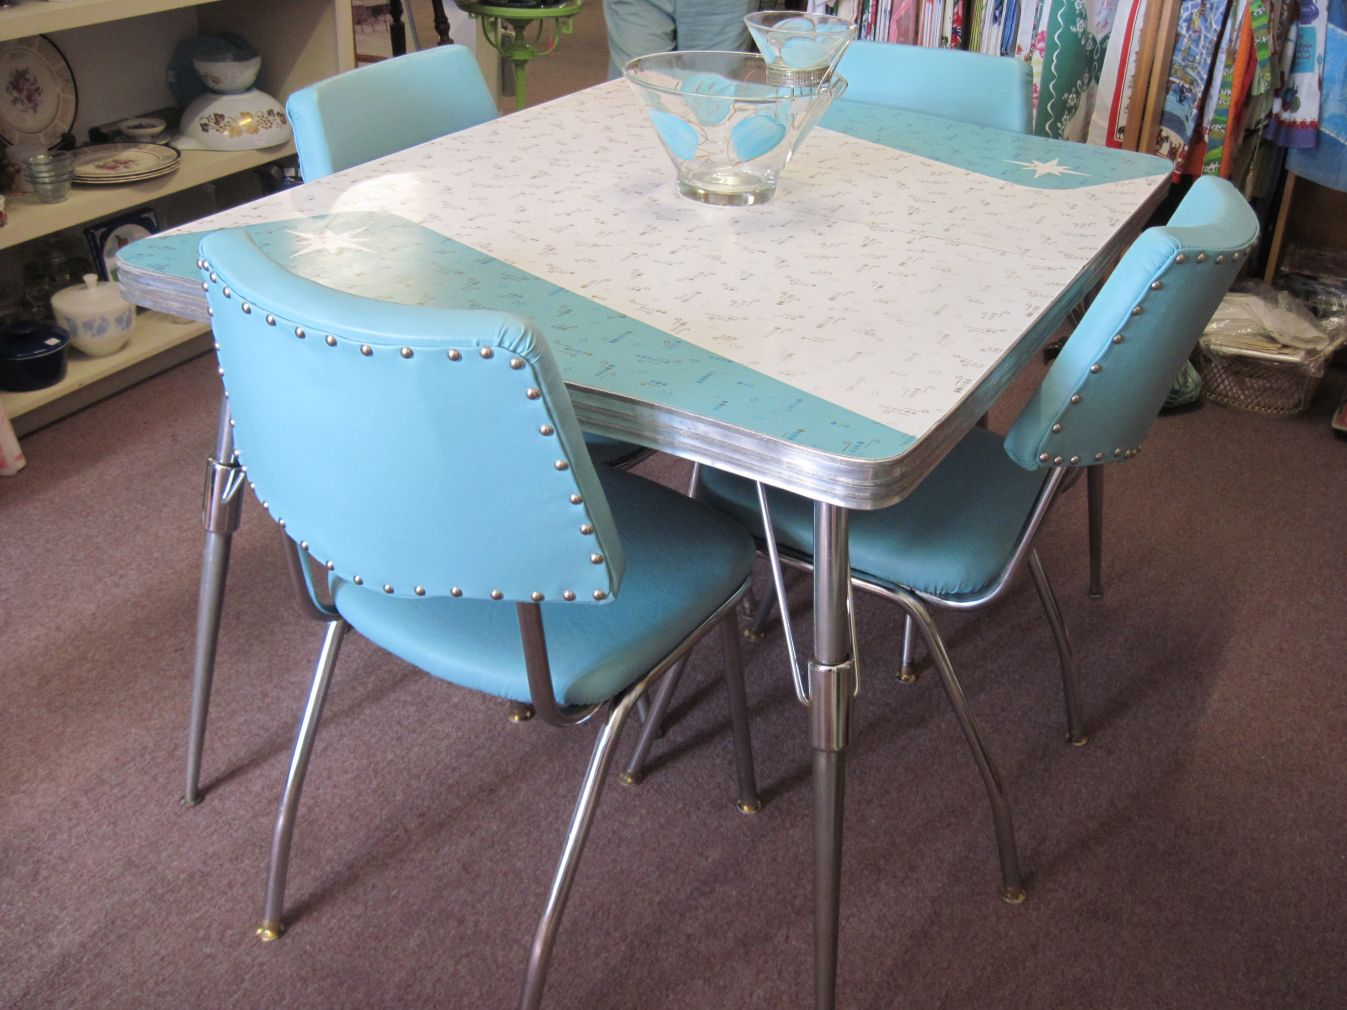 vintage kitchen table formica   the kitchen is an incredibly practical part of the house  formica kitchen table and chairs   modern italian furniture check      rh   pinterest com